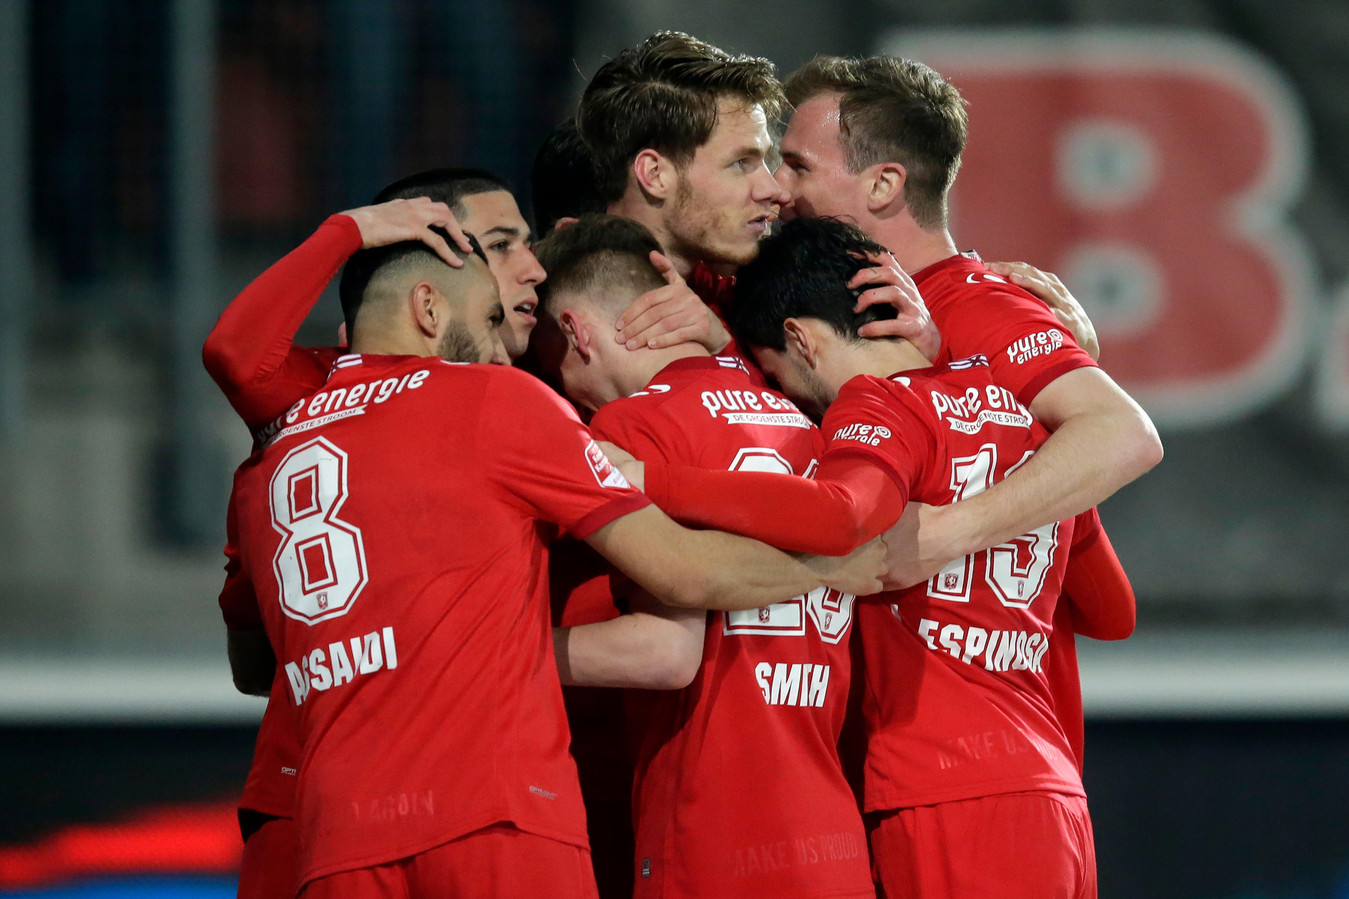 Jari Oosterwijk of FC Twente celebrates 1-0 with Oussama Assaidi of FC Twente, Aitor Cantalapiedra of FC Twente, Matthew Smith of FC Twente, Javier Espinosa of FC Twente, Peet Bijen of FC Twente